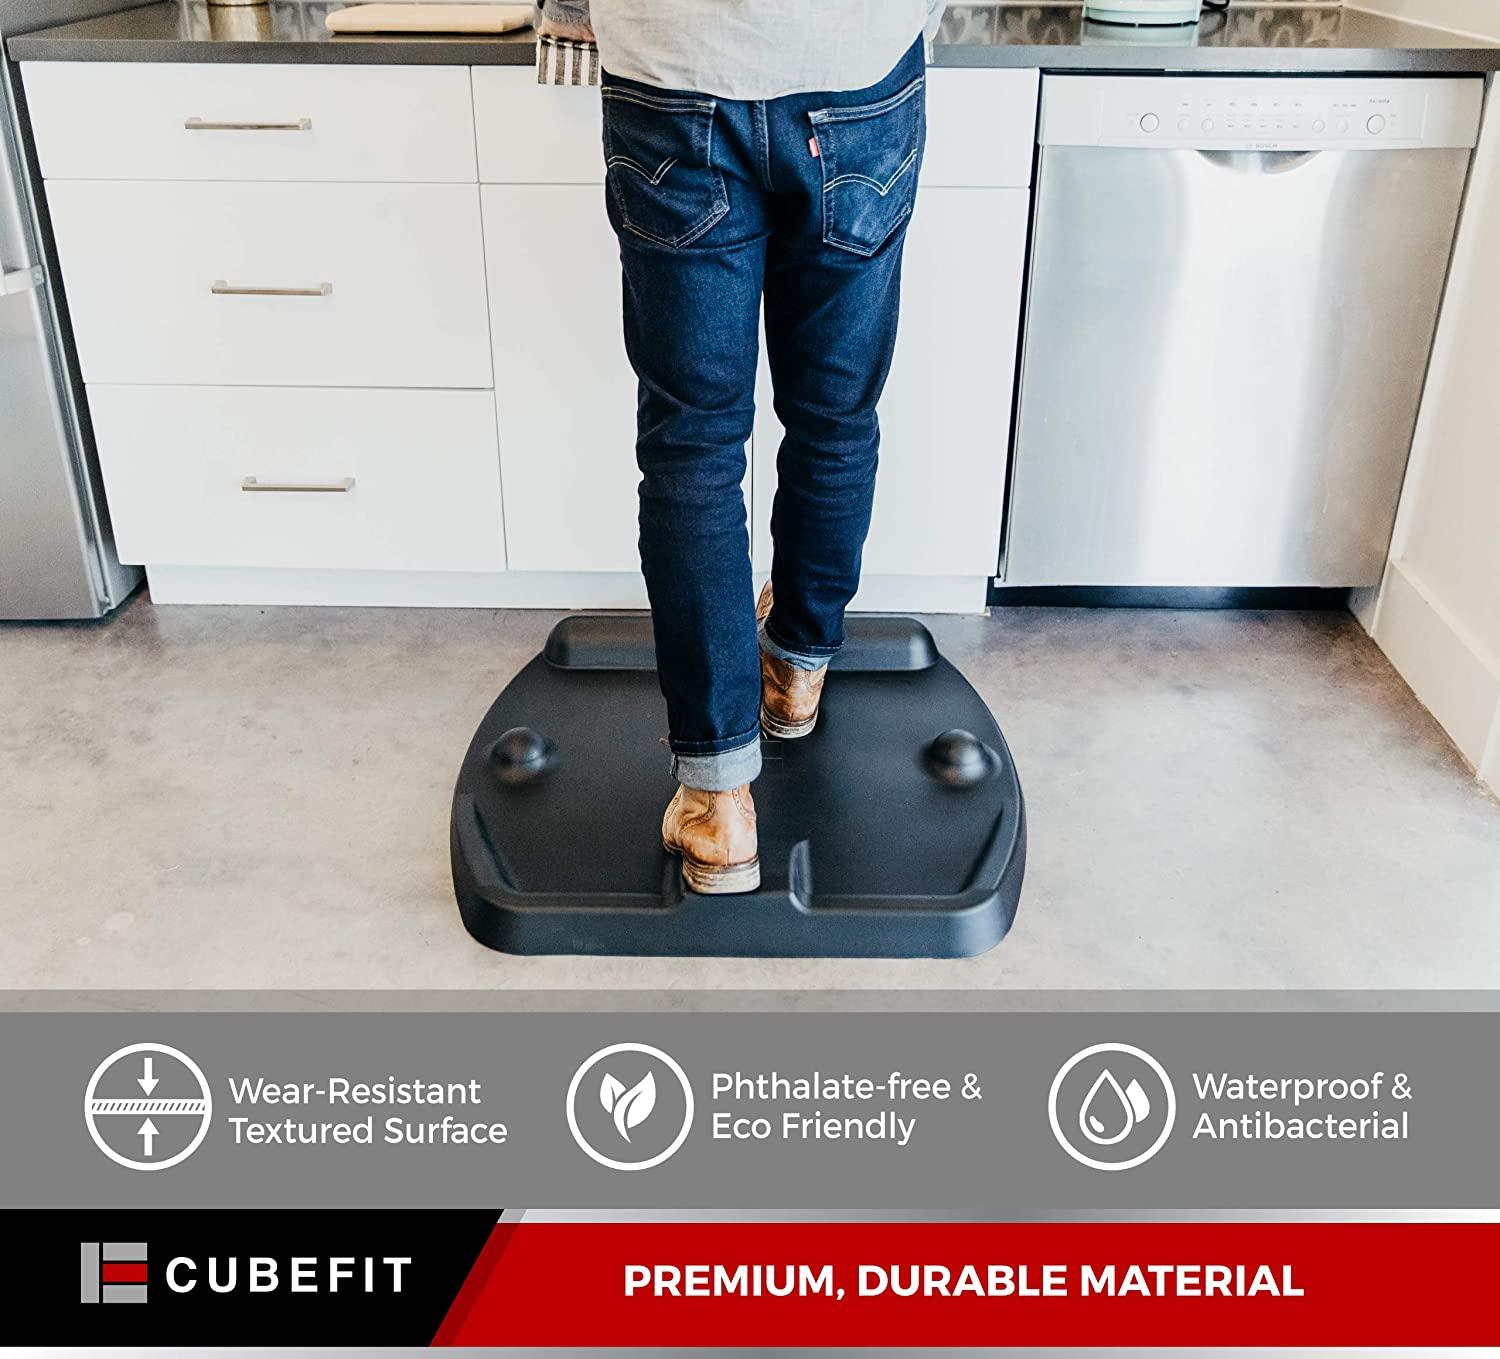 Acupuncture Balance Bar and Power Wedge to Stretch Anti Fatigue Mat and Standing Desk Mat with Built-in Massage Mounds and Stimulate Your Feet and Legs CubeFit Terramat Support